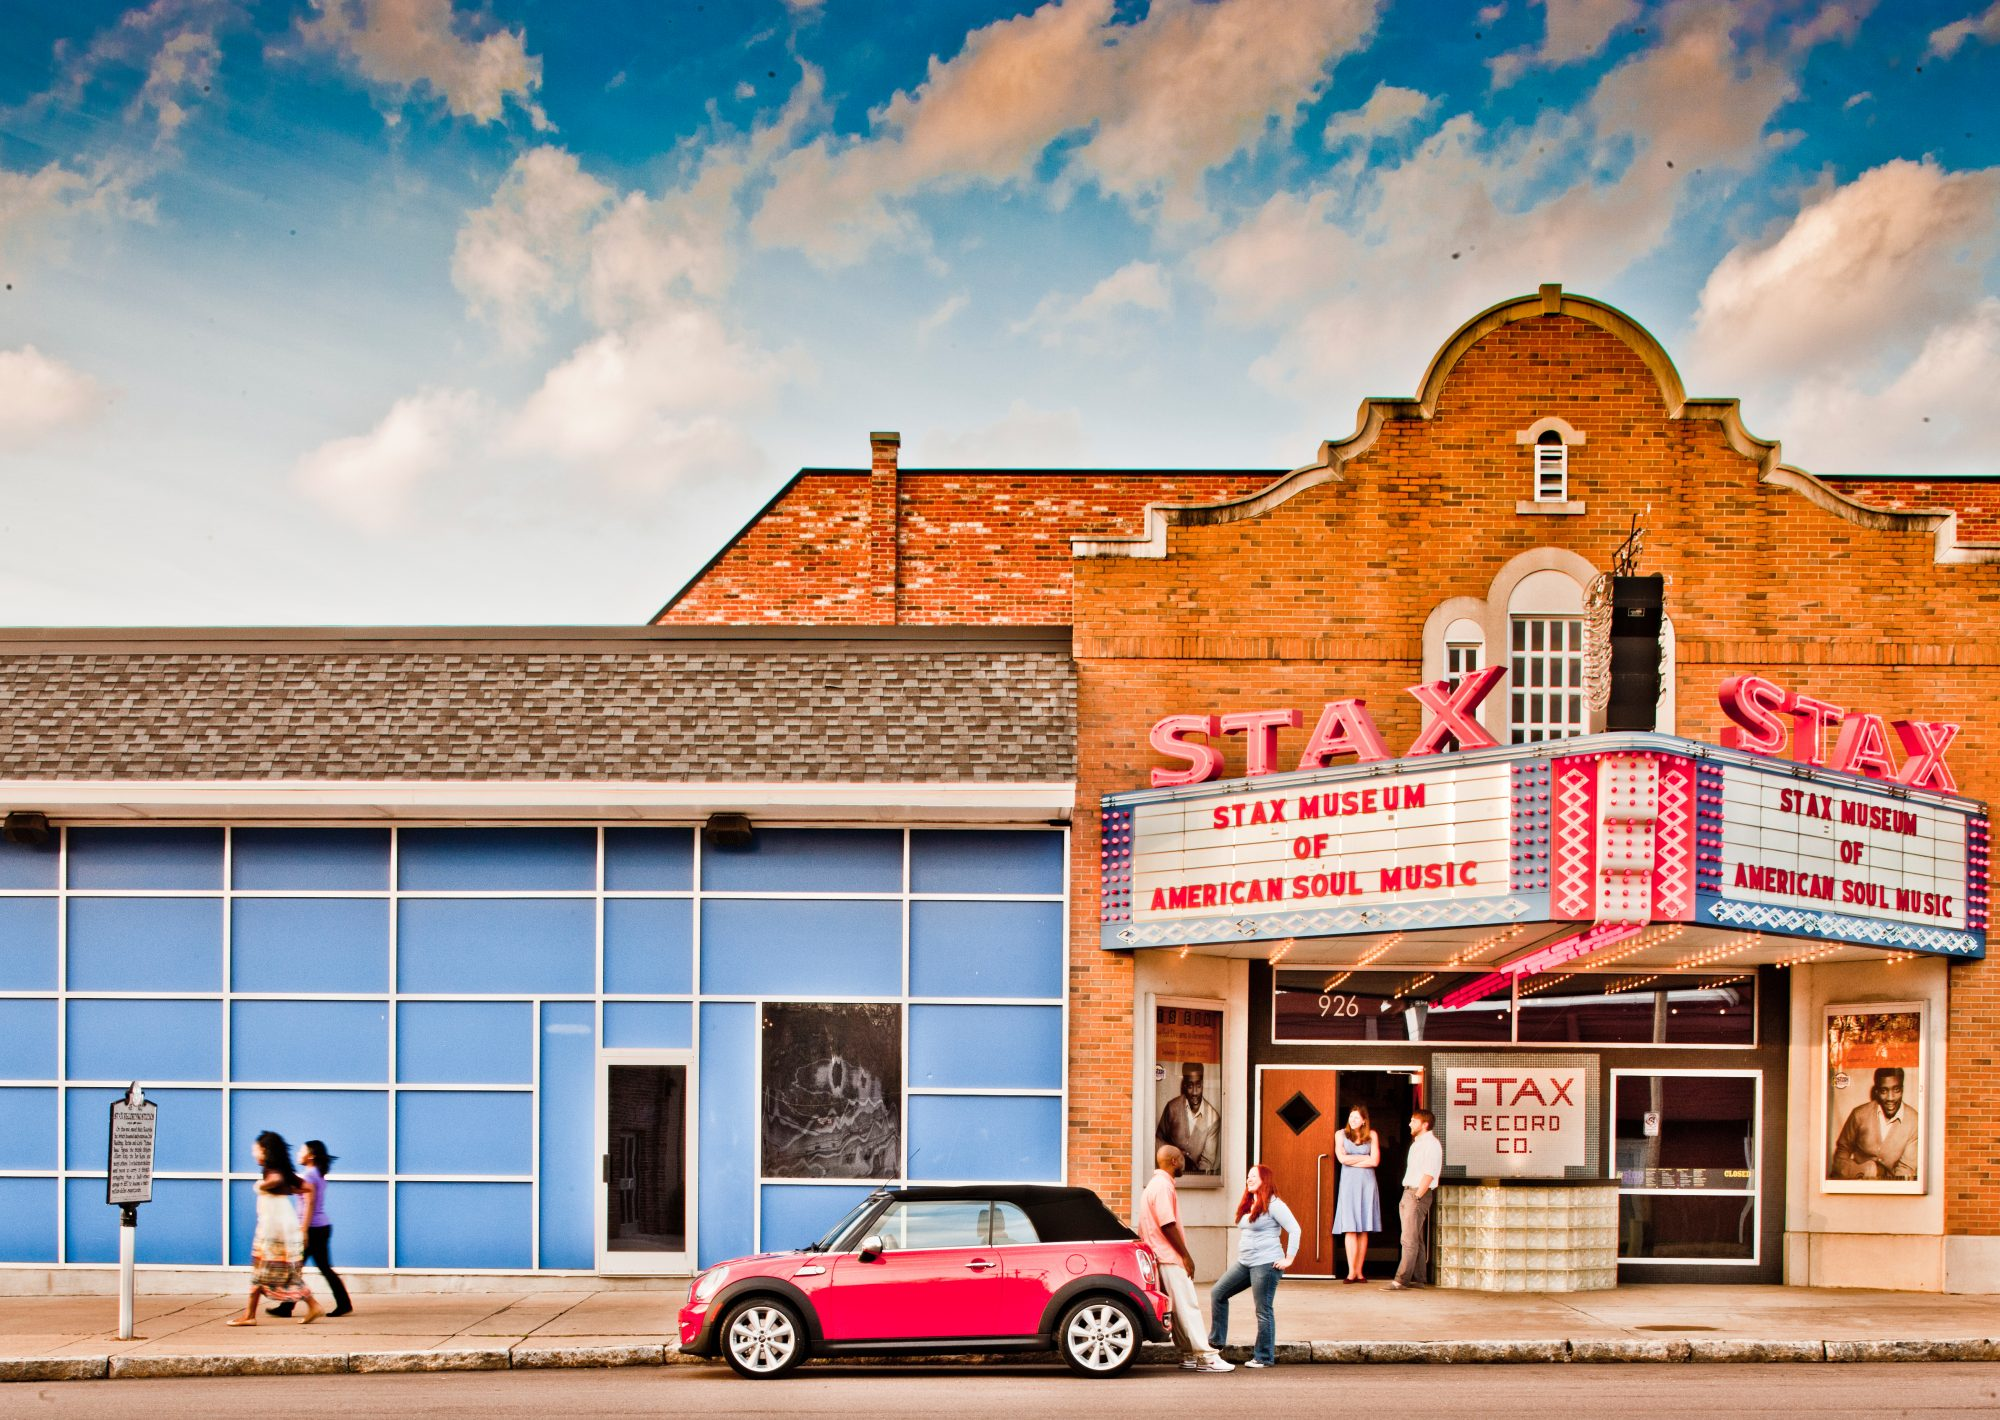 Stax Museum of American Soul Music (Memphis, Tennessee)